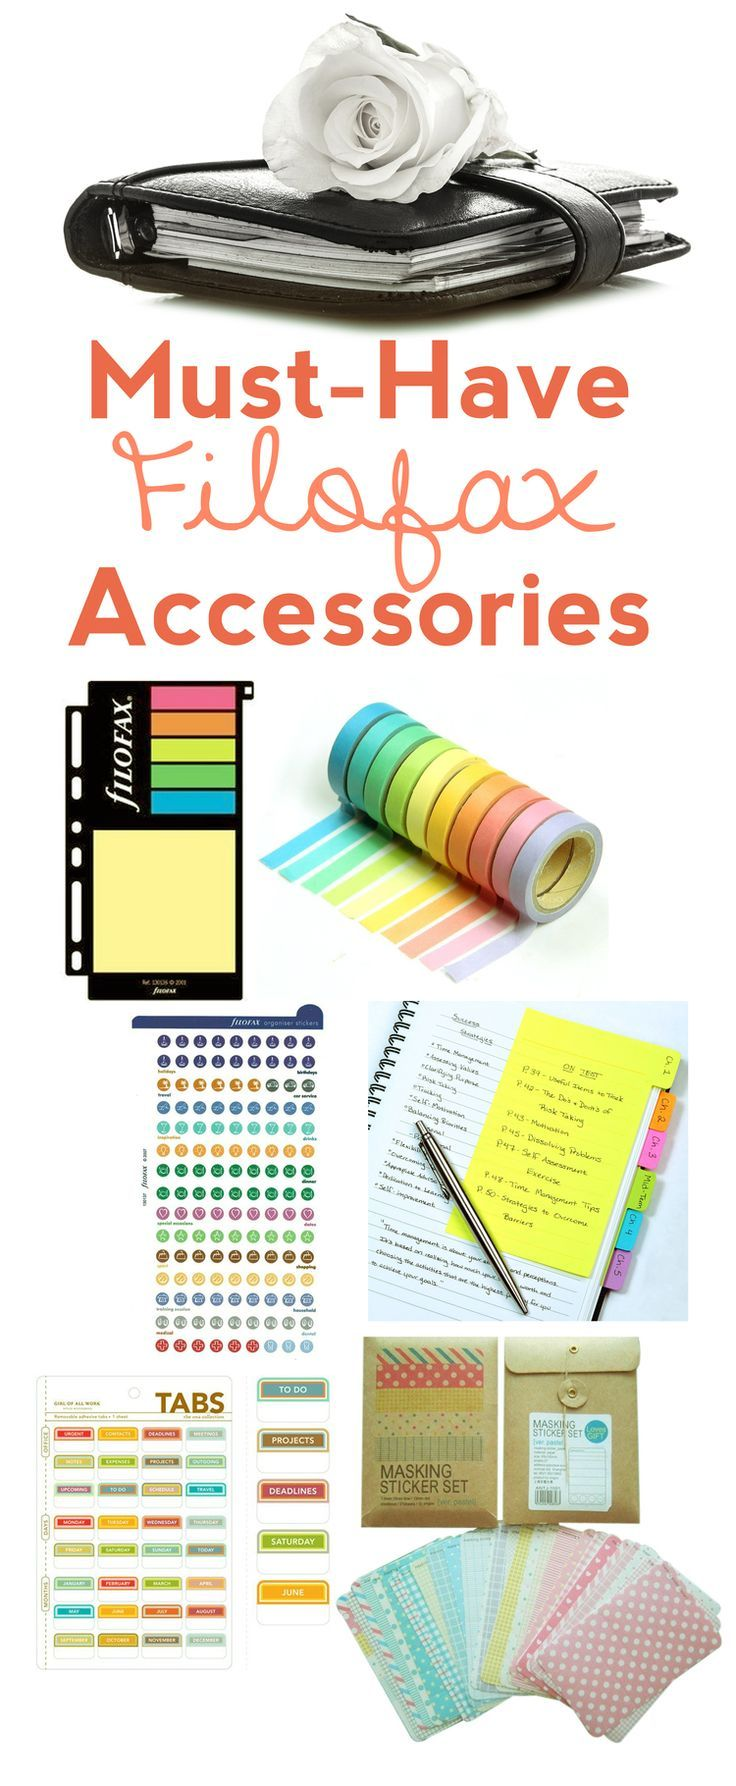 Find your must-have Filofax goodies here! Make your planner personalized, fun, and organized. All goodies are very affordable, some are even cheap!